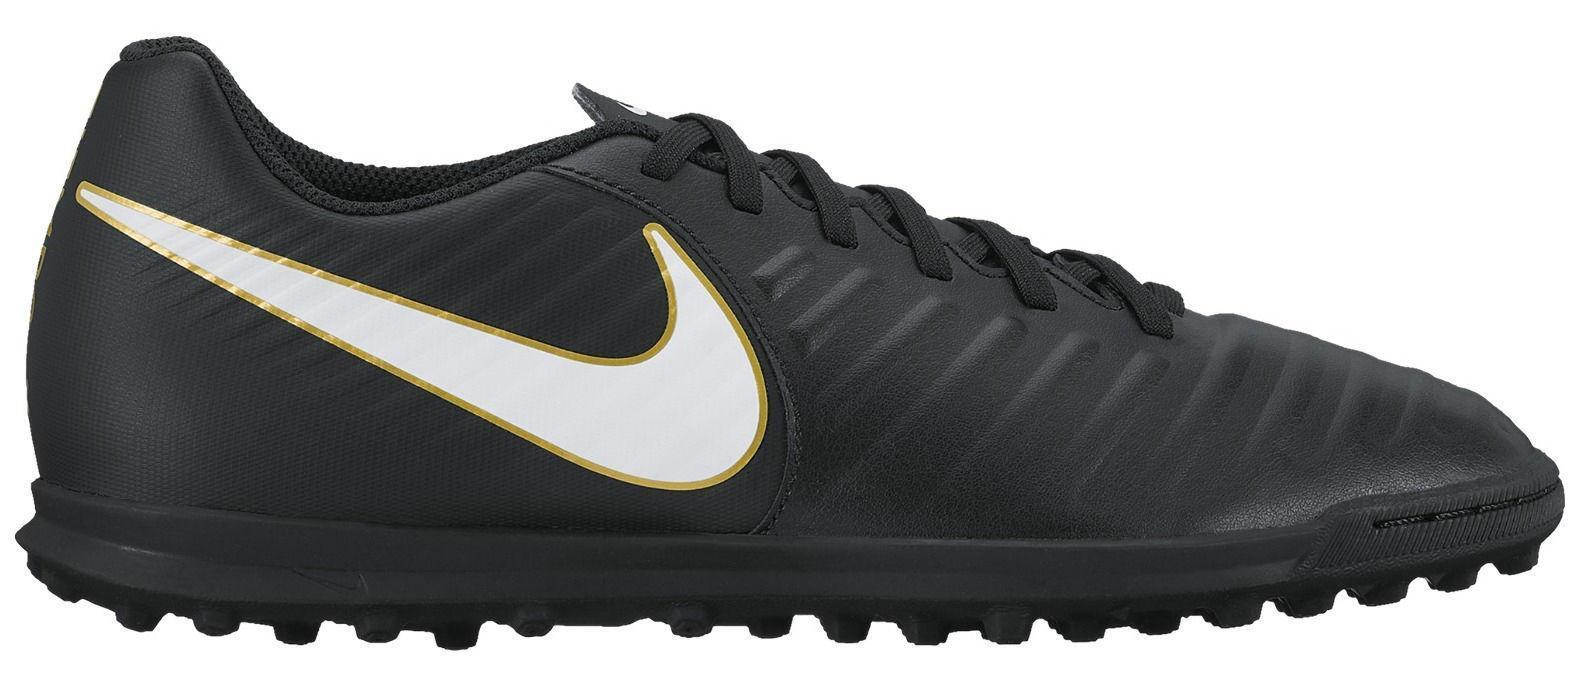 FIVE-A-SIDE FOOTBALL SHOES NIKE TIEMPO RIO IV TF TURF OUTDOOR 897770-002